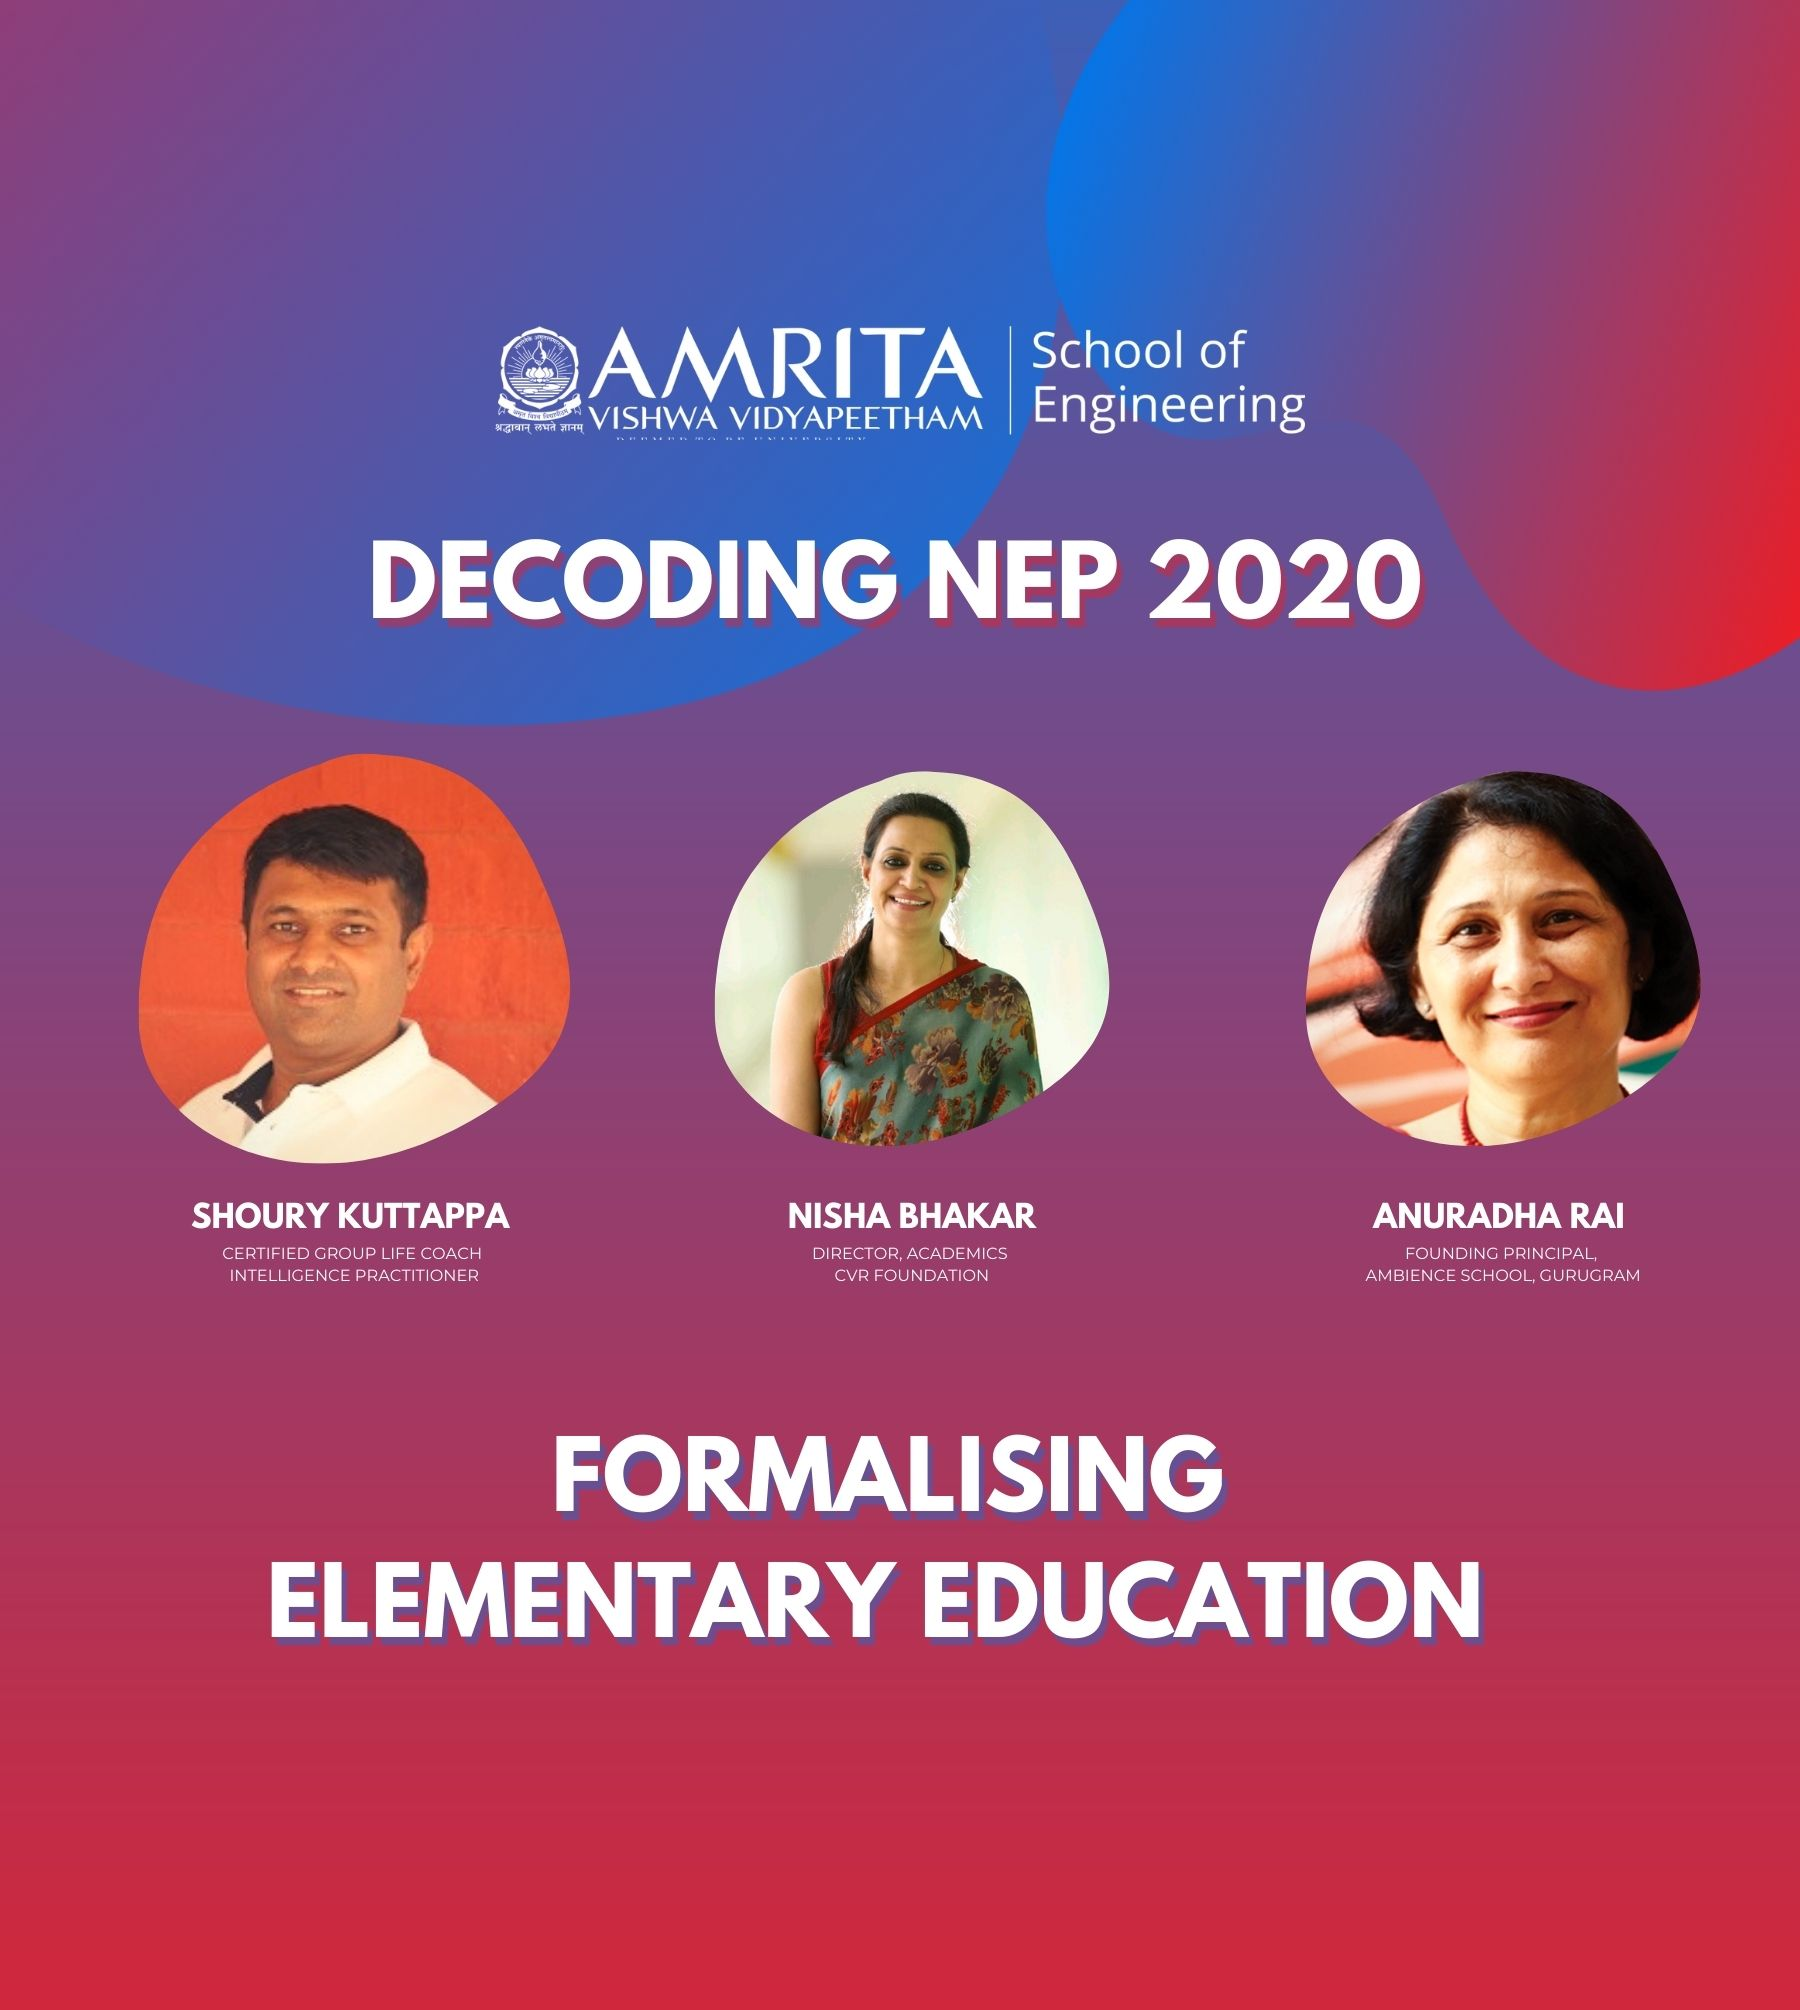 How can ECCE be successfully implemented under NEP 2020?